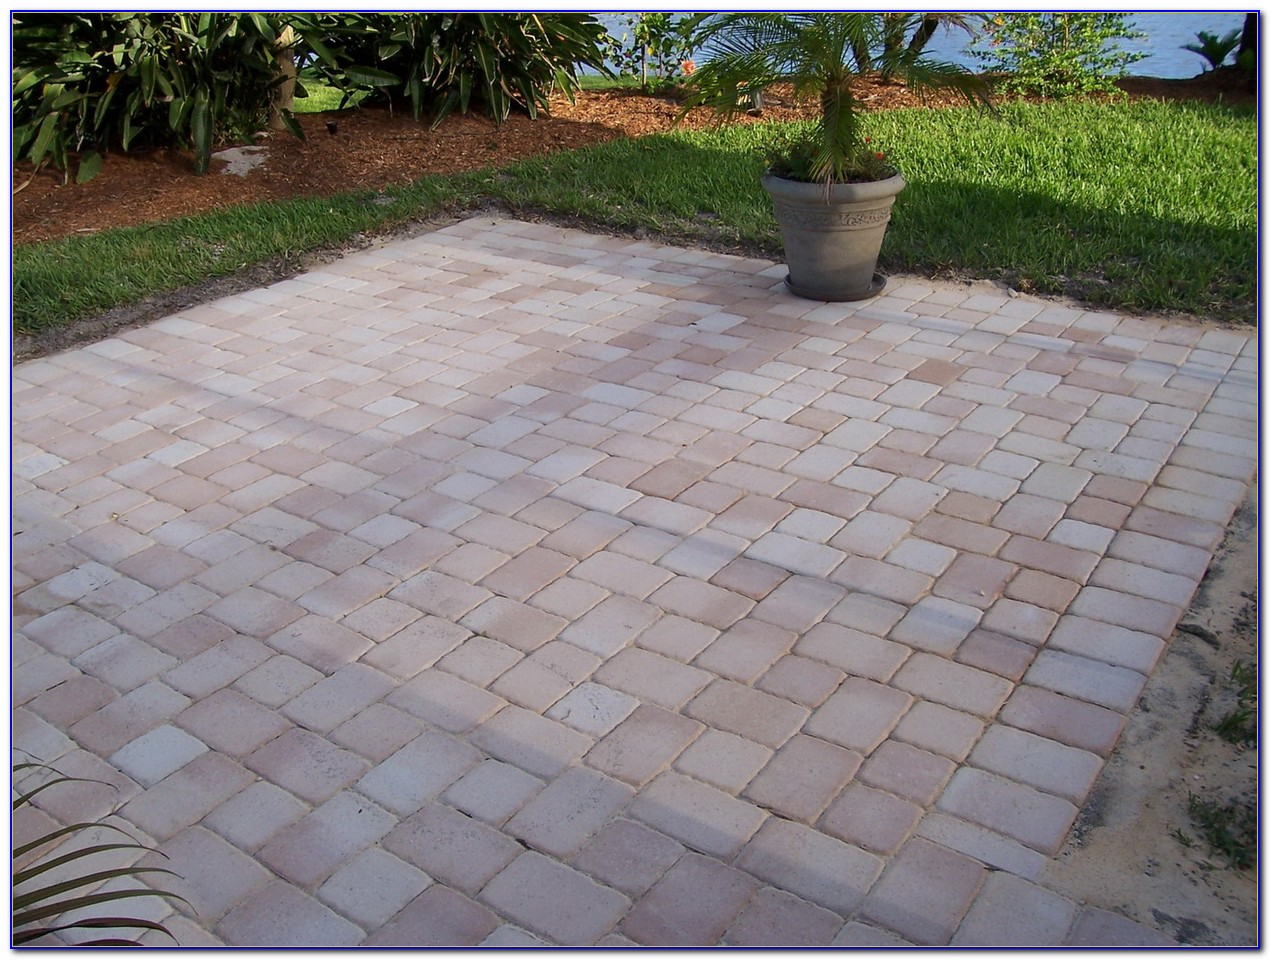 Patio Paver Designs Ideas - Patios : Home Design Ideas ...